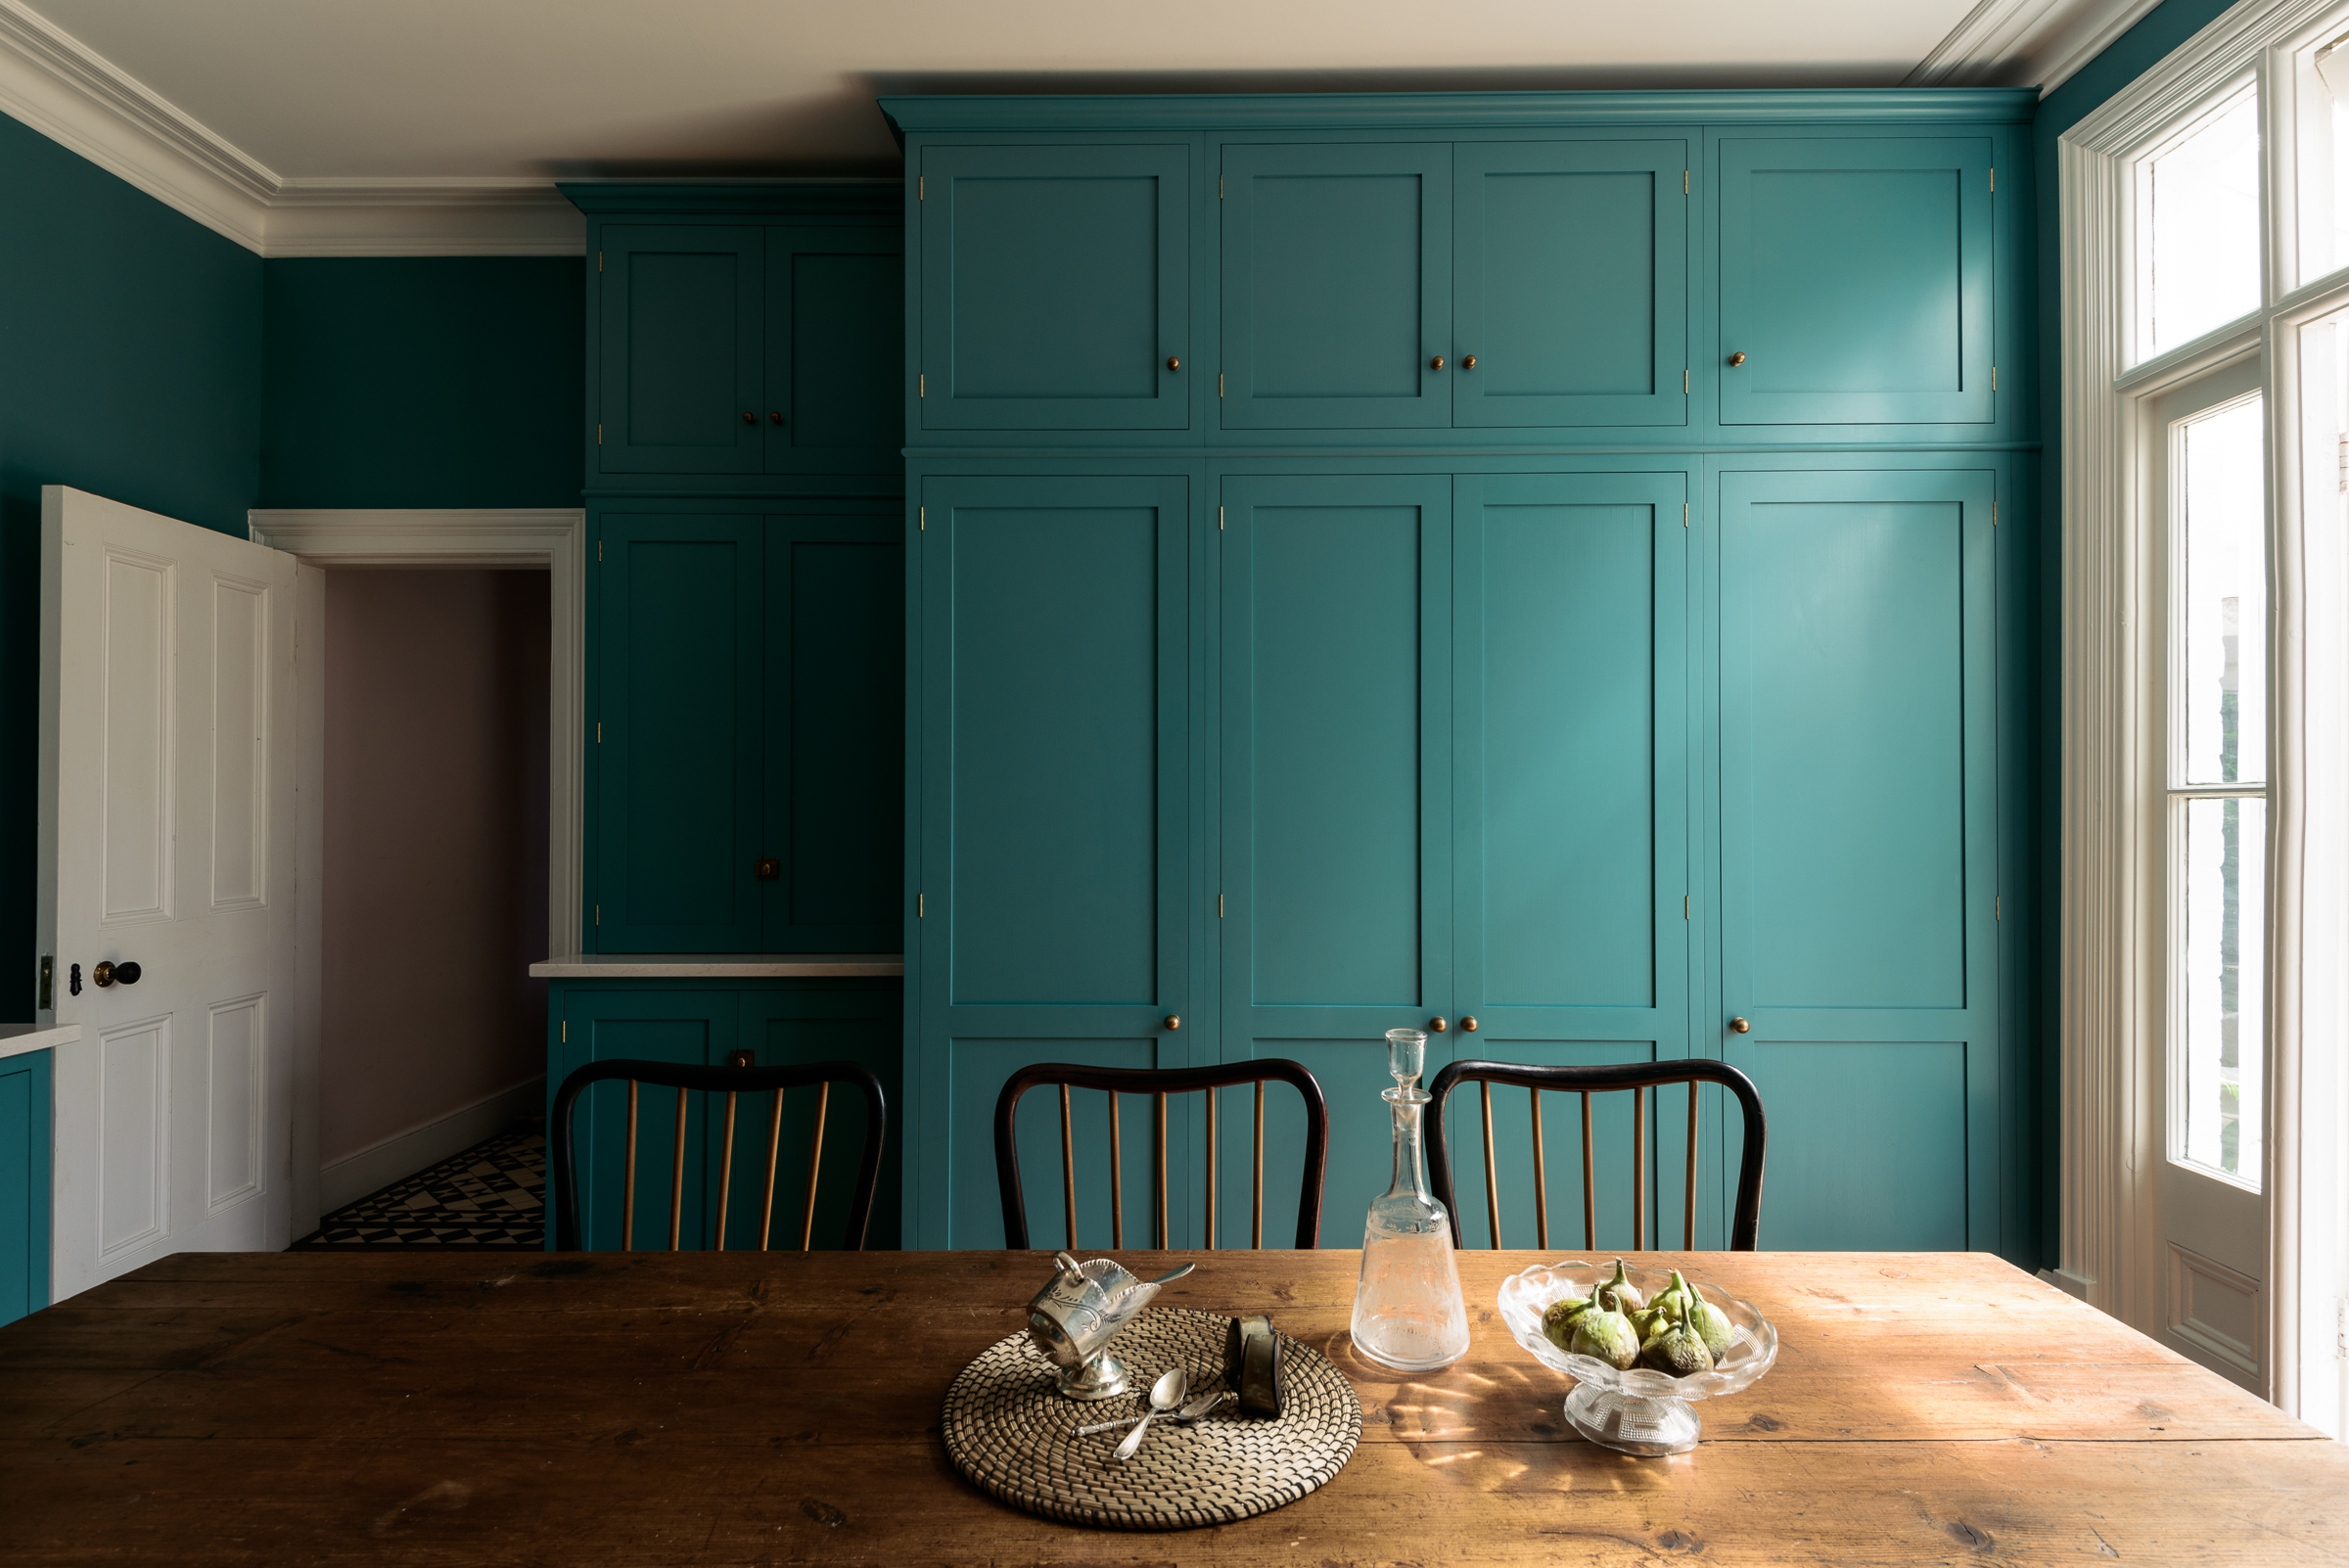 7. The Real Shaker Kitchen by deVOL